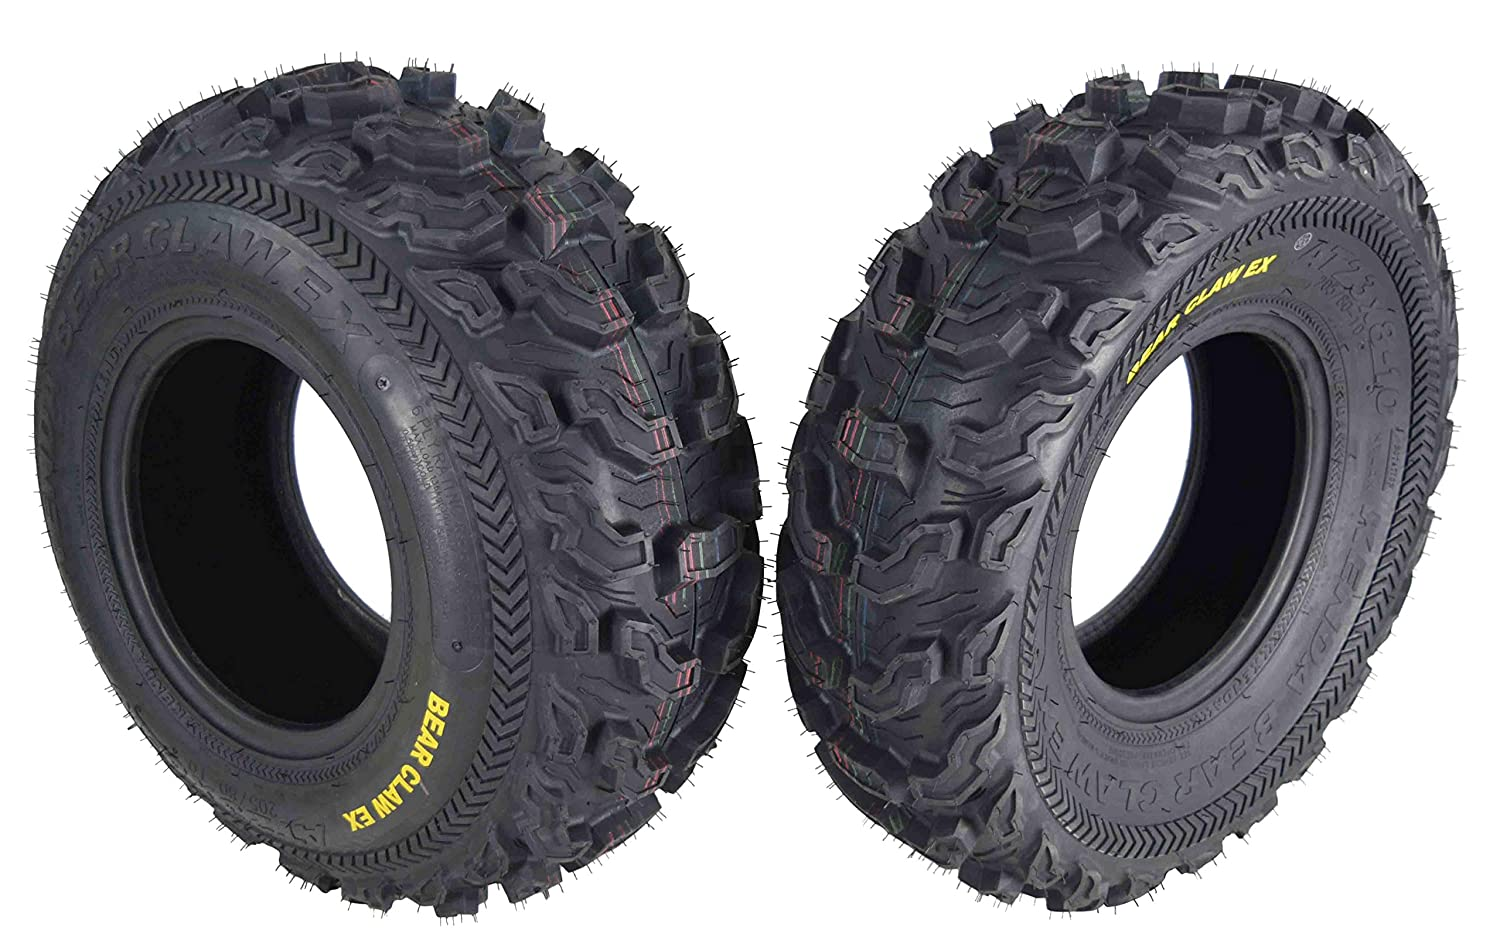 Kenda Bear Claw EX 23x8-10 Front ATV 6 PLY Tires Bearclaw 23x8x10-2 Pack